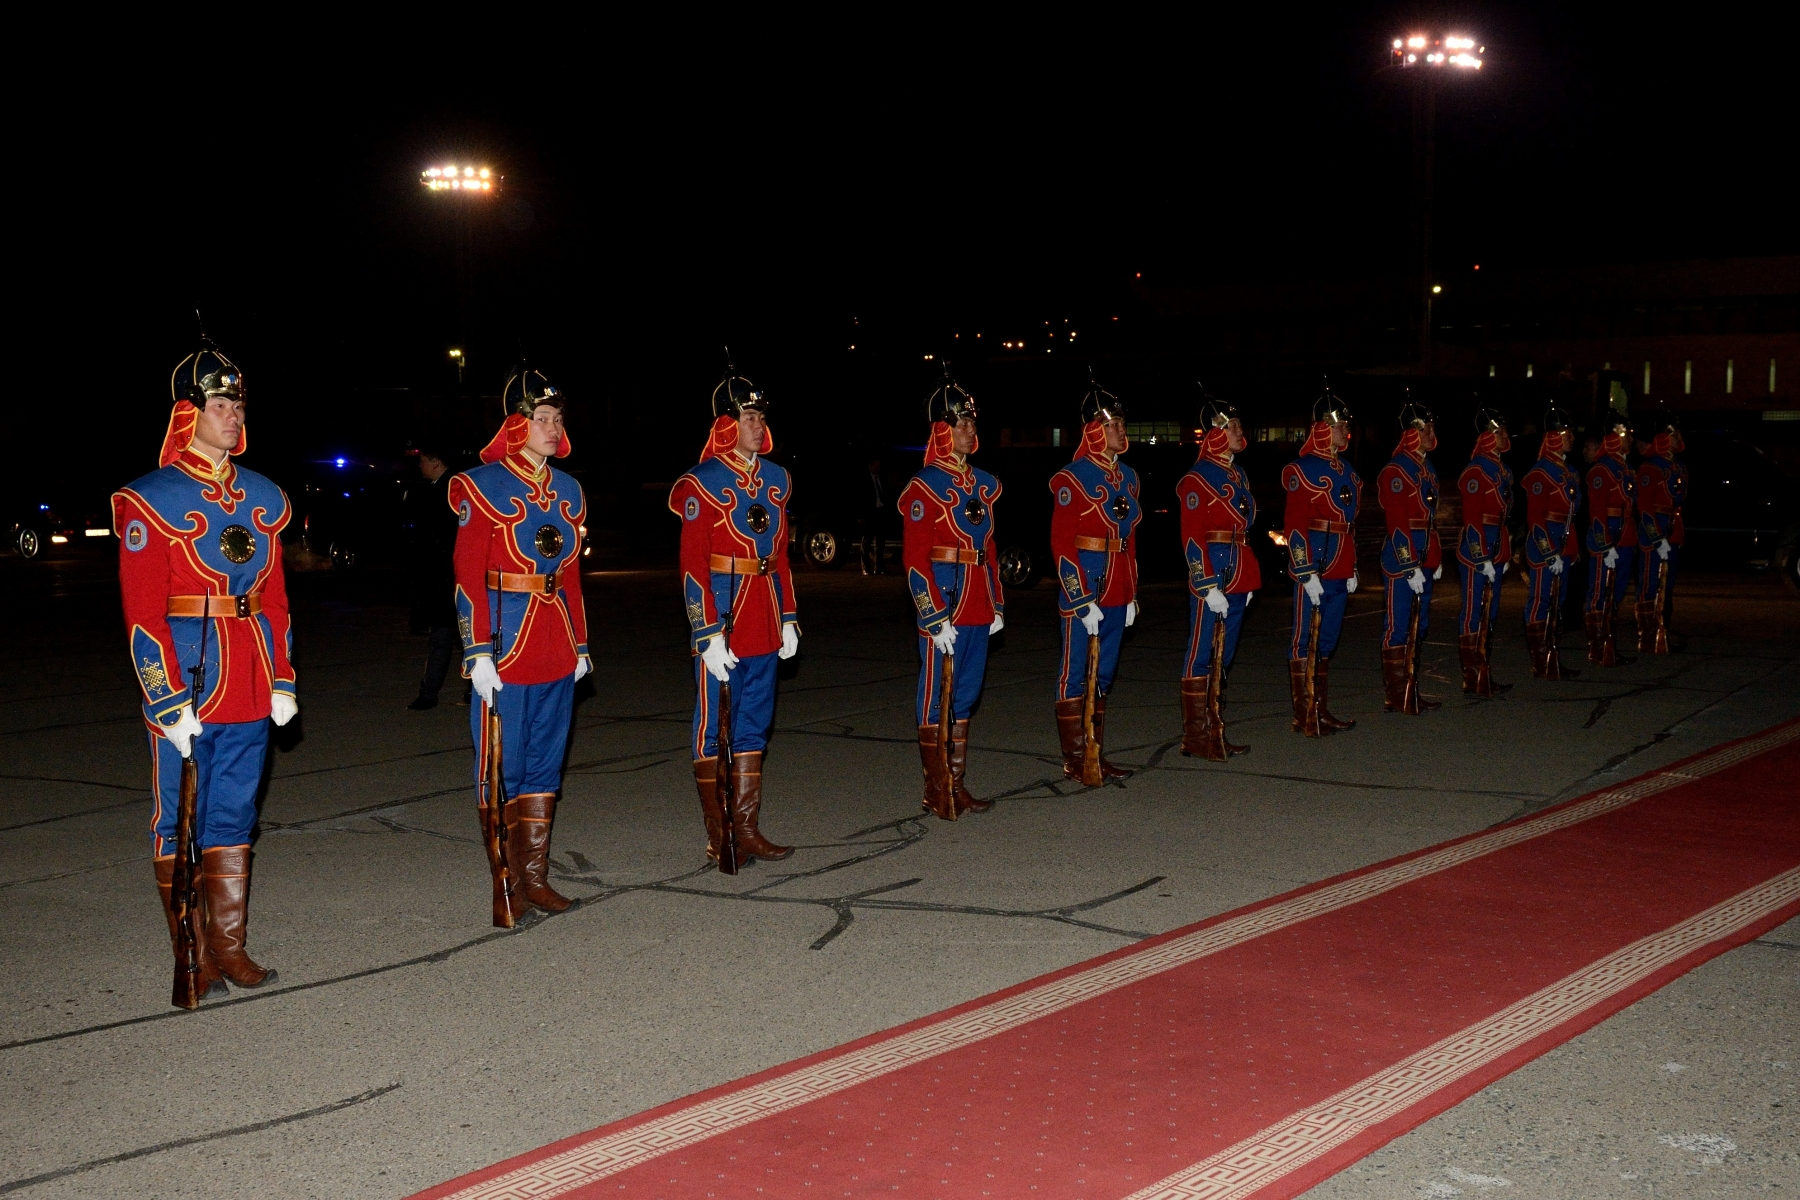 At the request of the Right Honourable Stephen Harper, Prime Minister of Canada, 